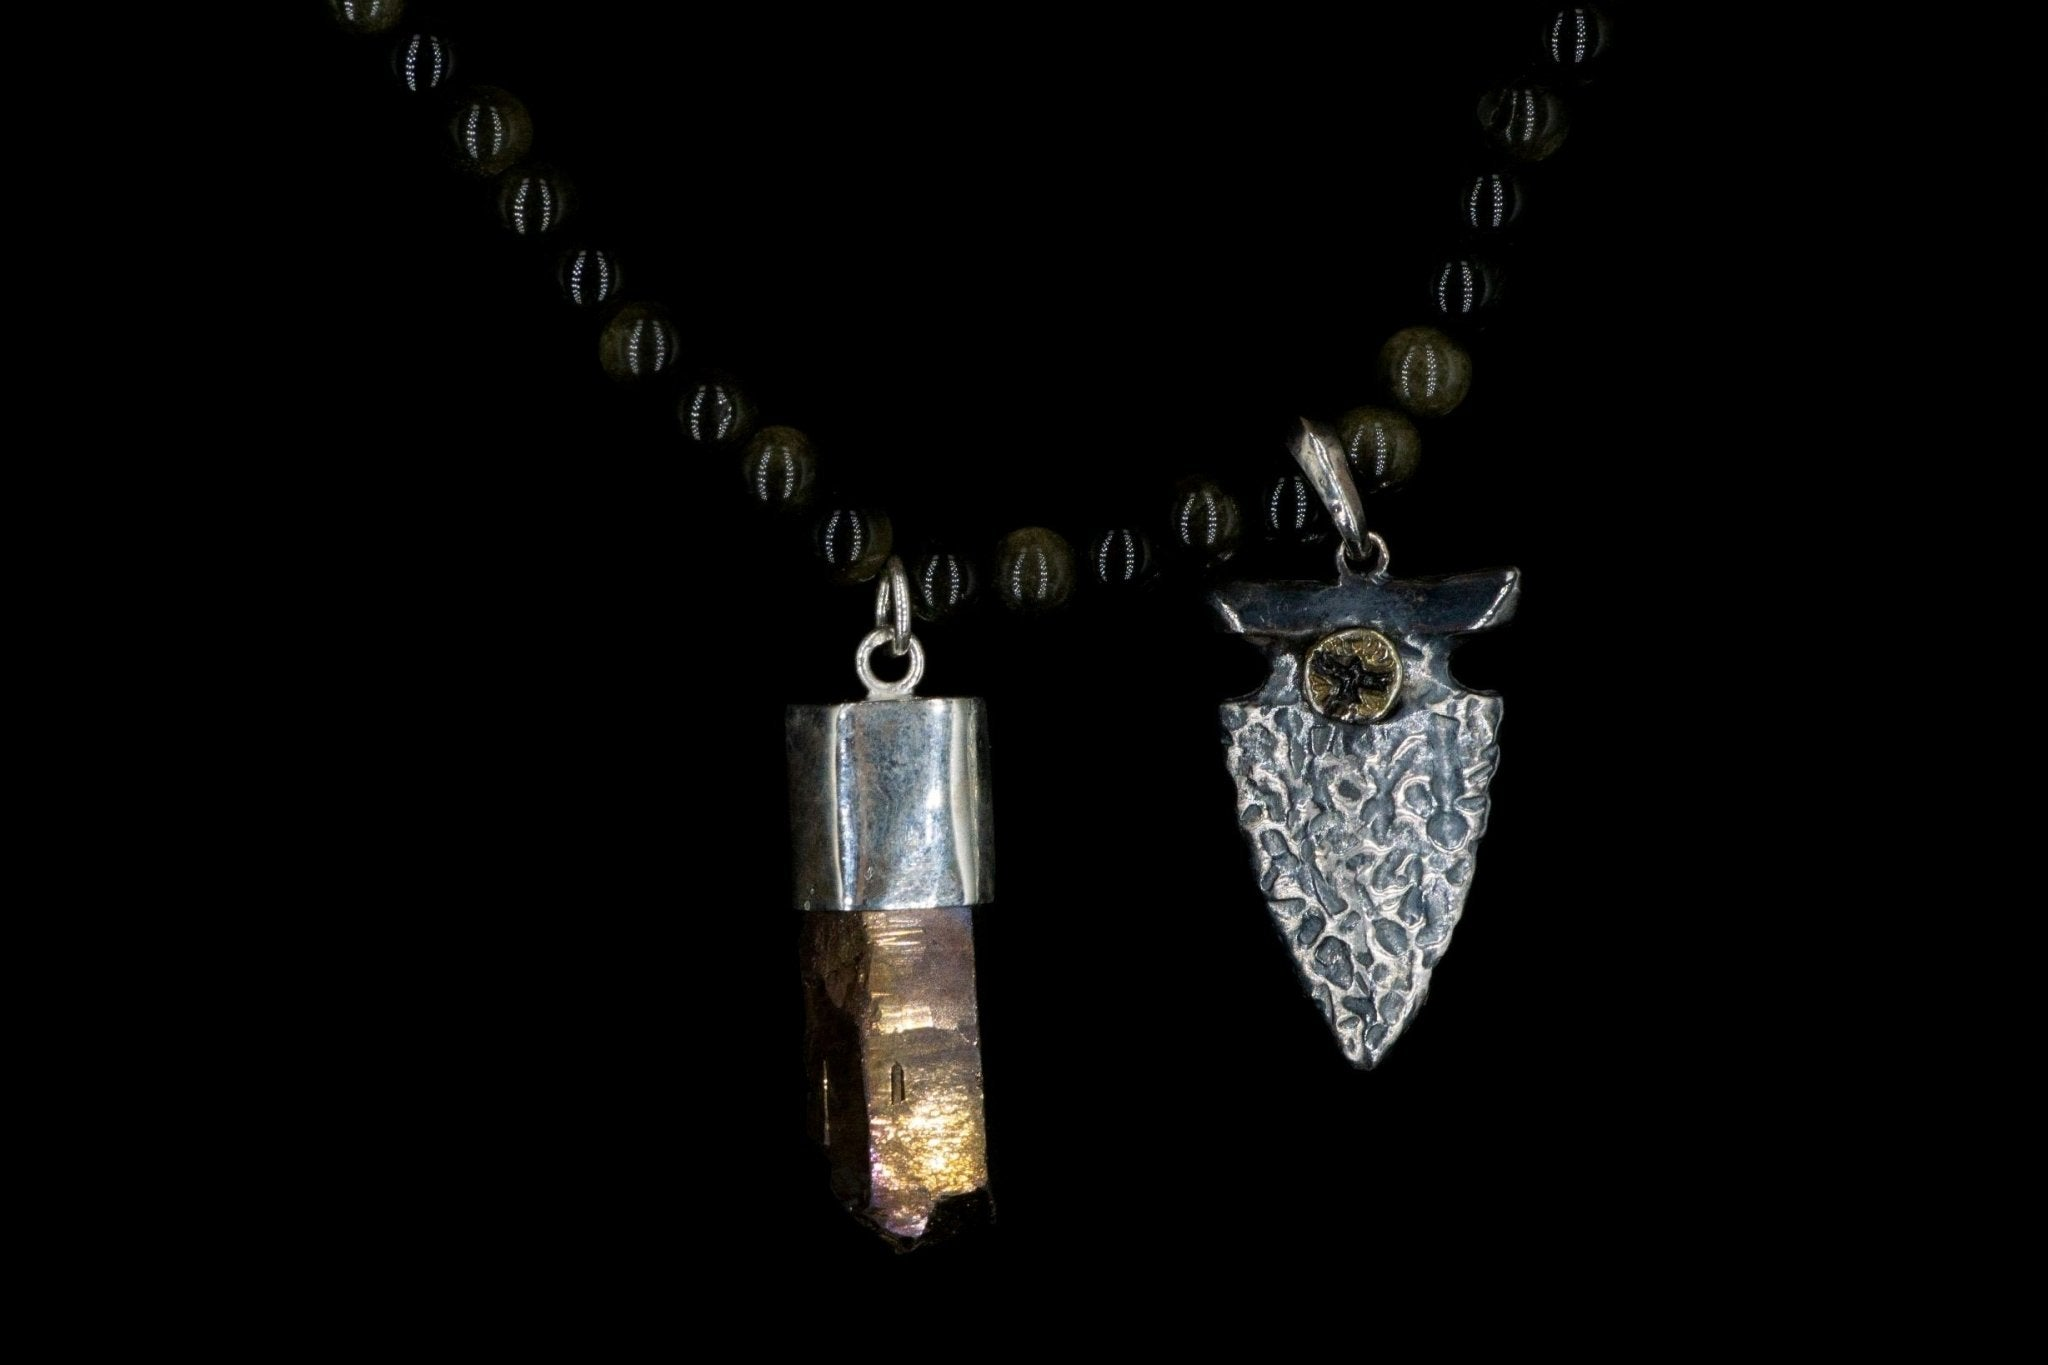 OBSIDIAN ANCIENT ARROWHEAD NECKLACE